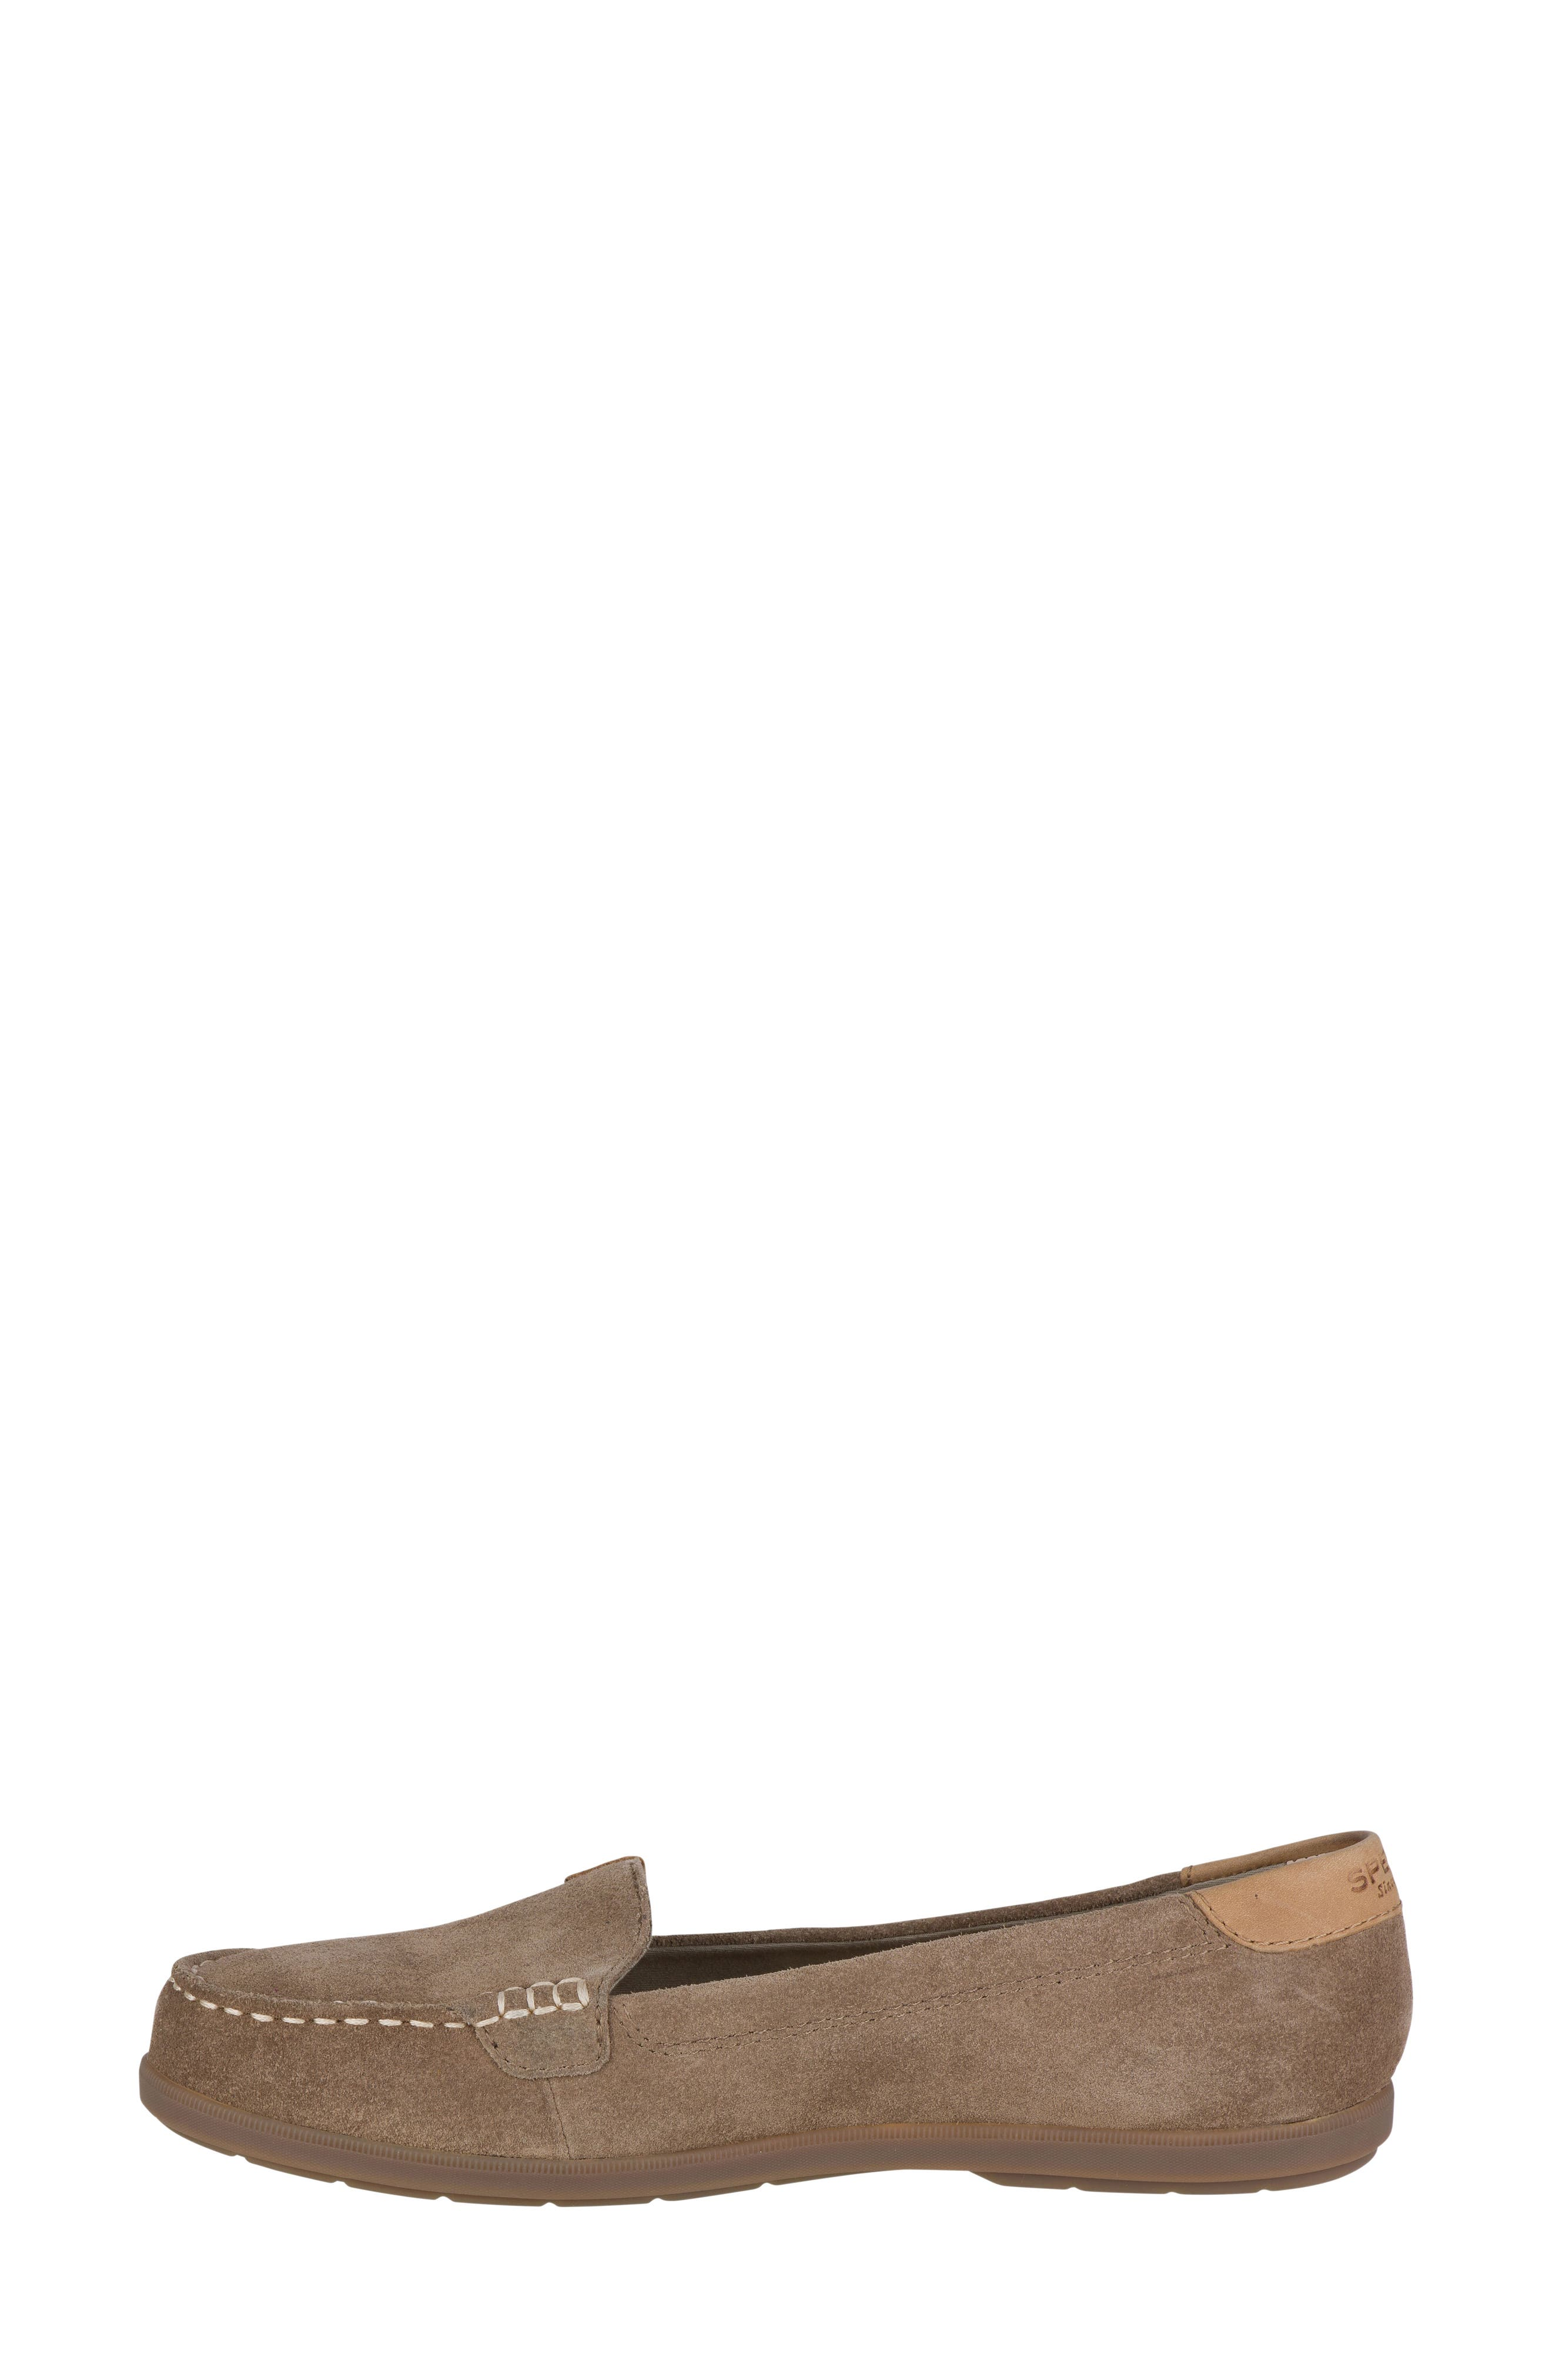 Coil Mia Loafer,                             Alternate thumbnail 12, color,